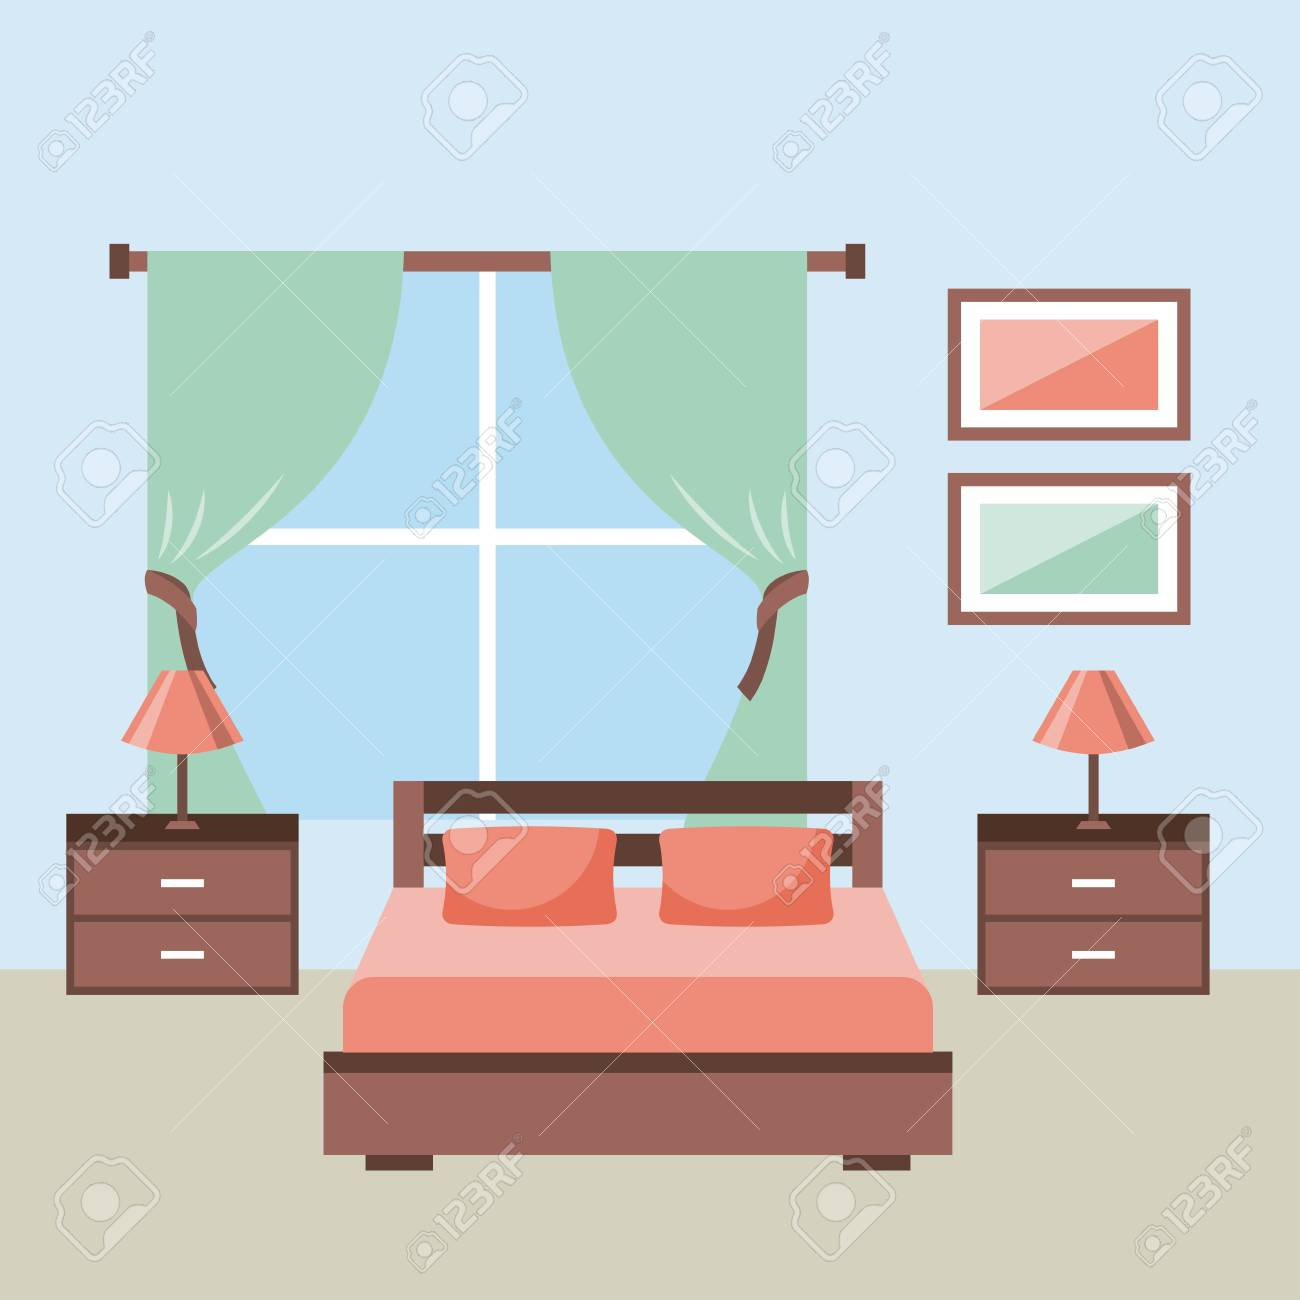 Bedroom Interior With Furniture Bedside Table Lamp Frame Window Royalty Free Cliparts Vectors And Stock Illustration Image 85621652